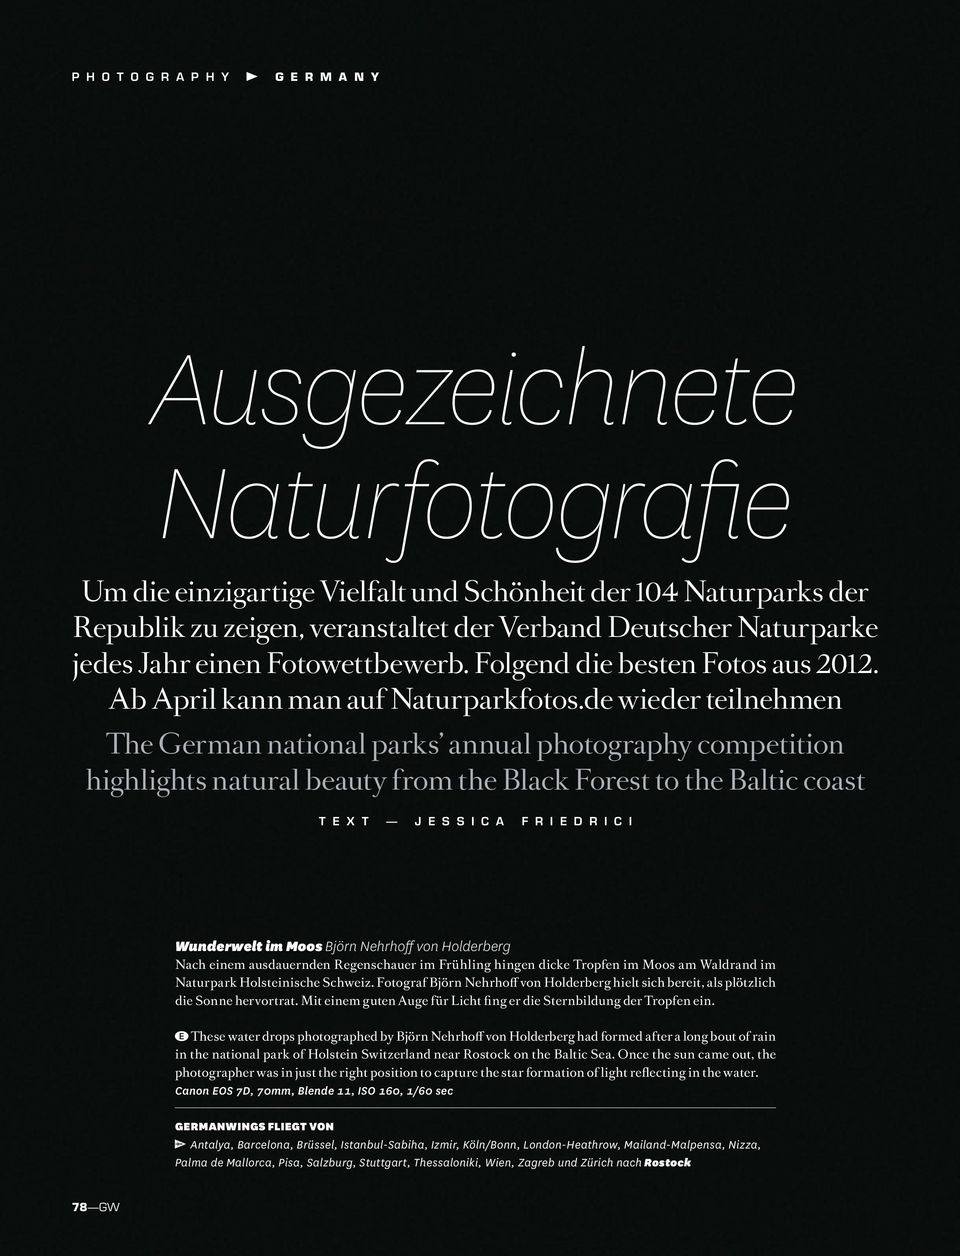 de wieder teilnehmen The German national parks annual photography competition highlights natural beauty from the Black Forest to the Baltic coast T e x t J E s s i c a F r i e d r i c i Wunderwelt im